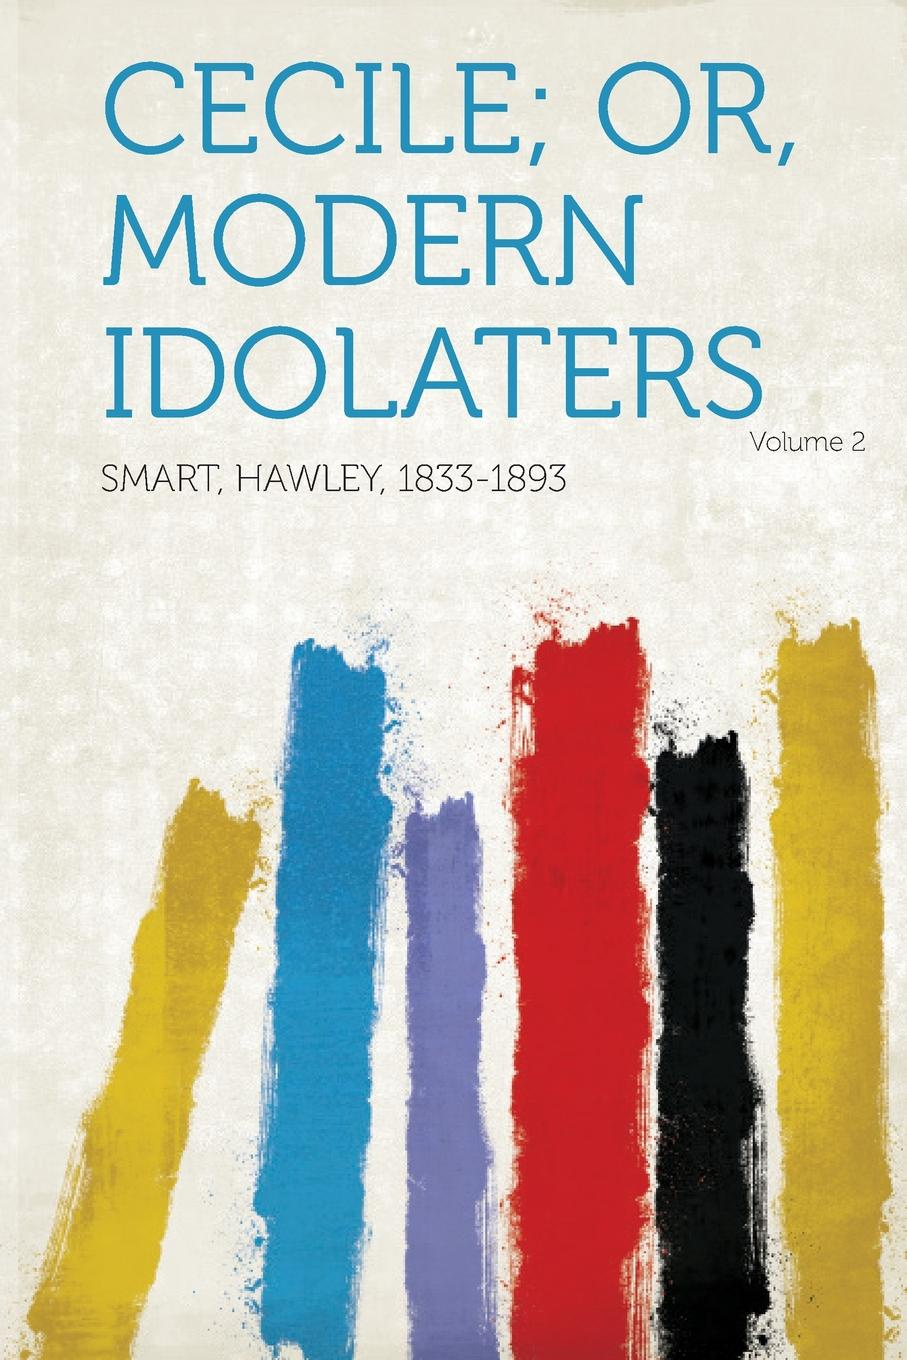 Hawley Smart Cecile; Or, Modern Idolaters Volume 2